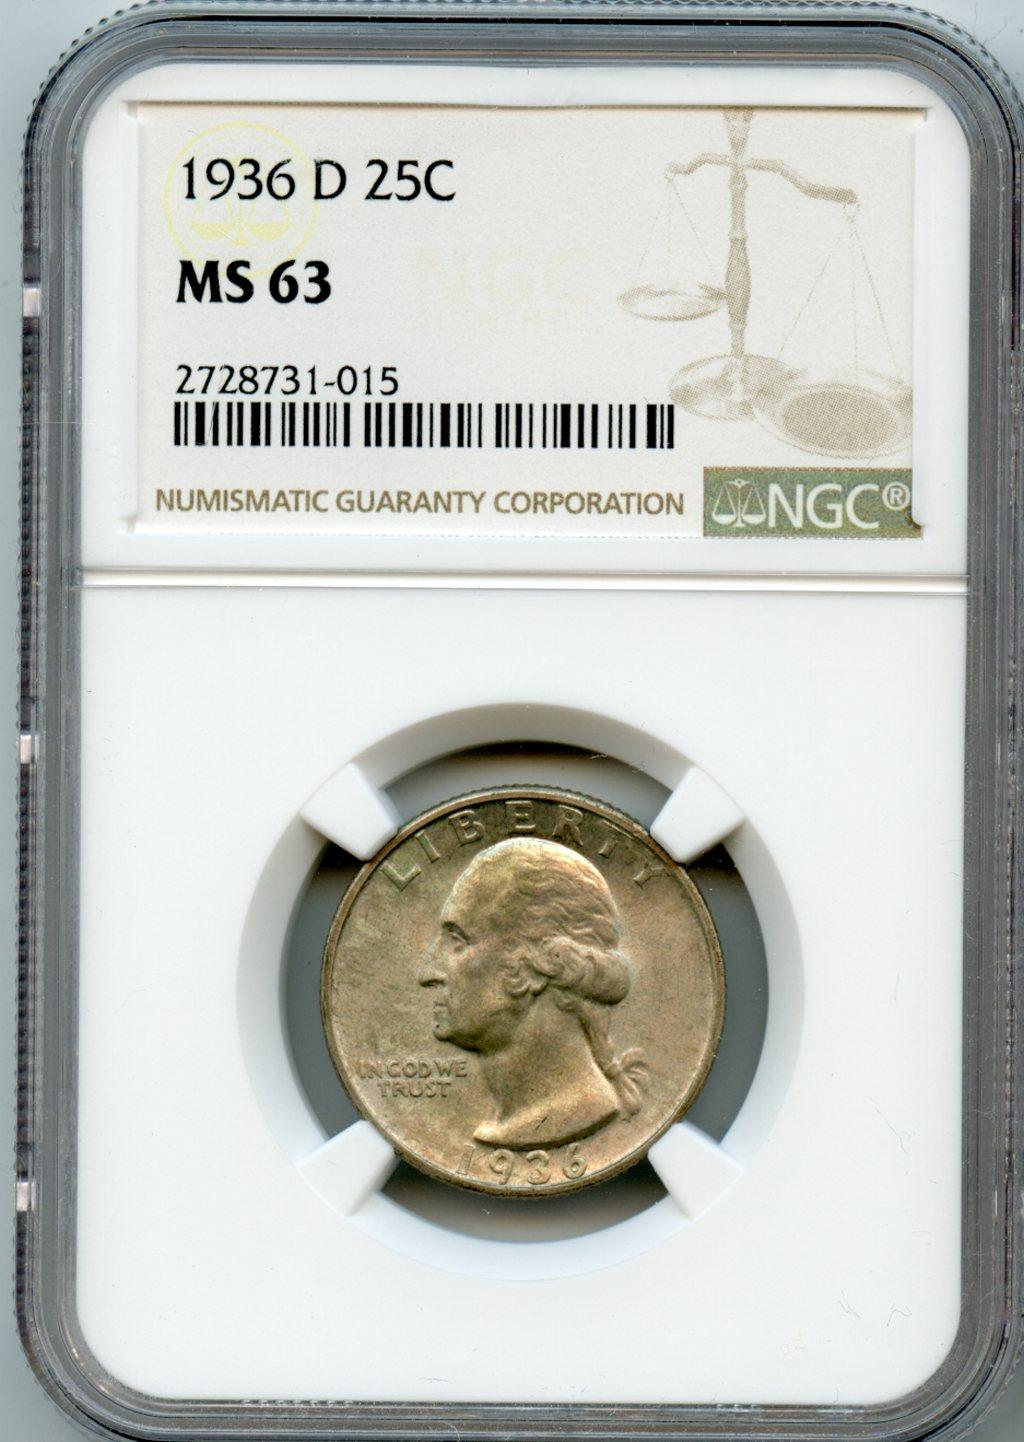 1936-D Washington Silver Quarter in NGC MS 63